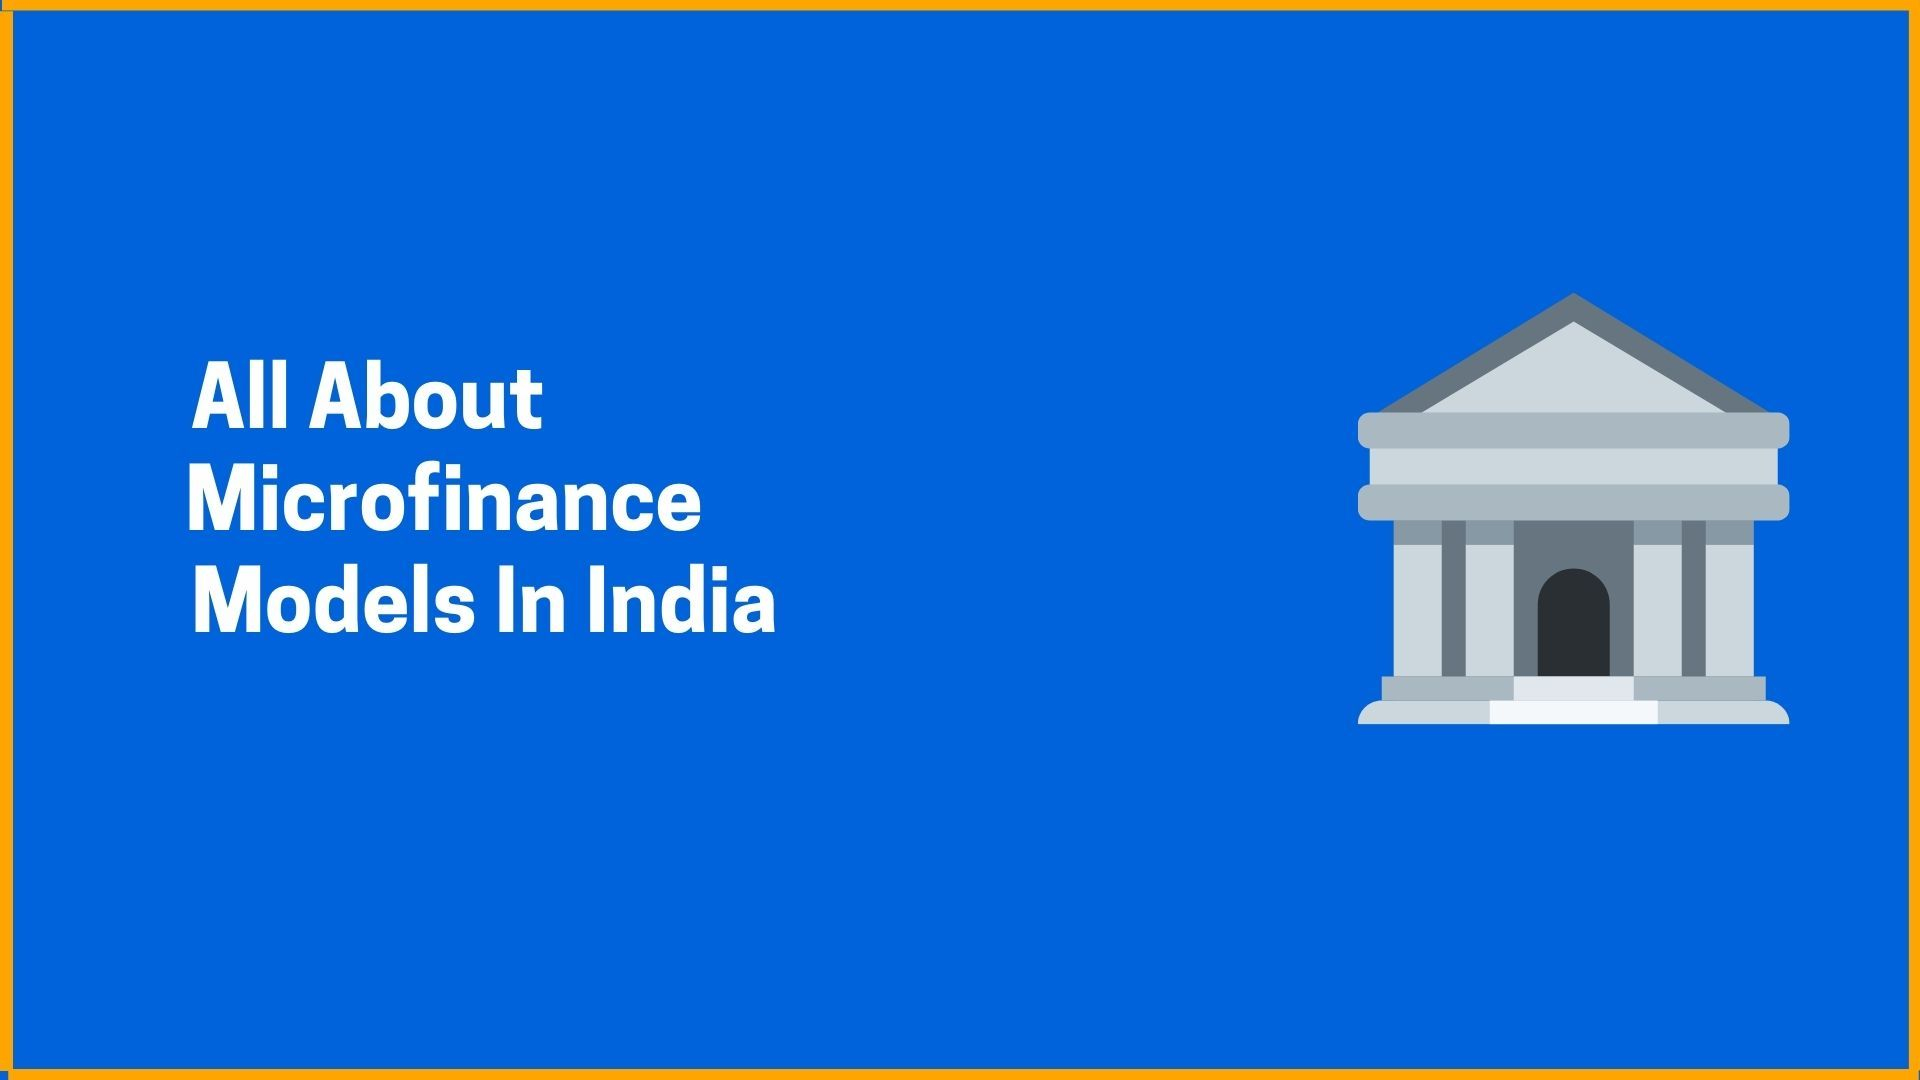 All About Microfinance Models In India